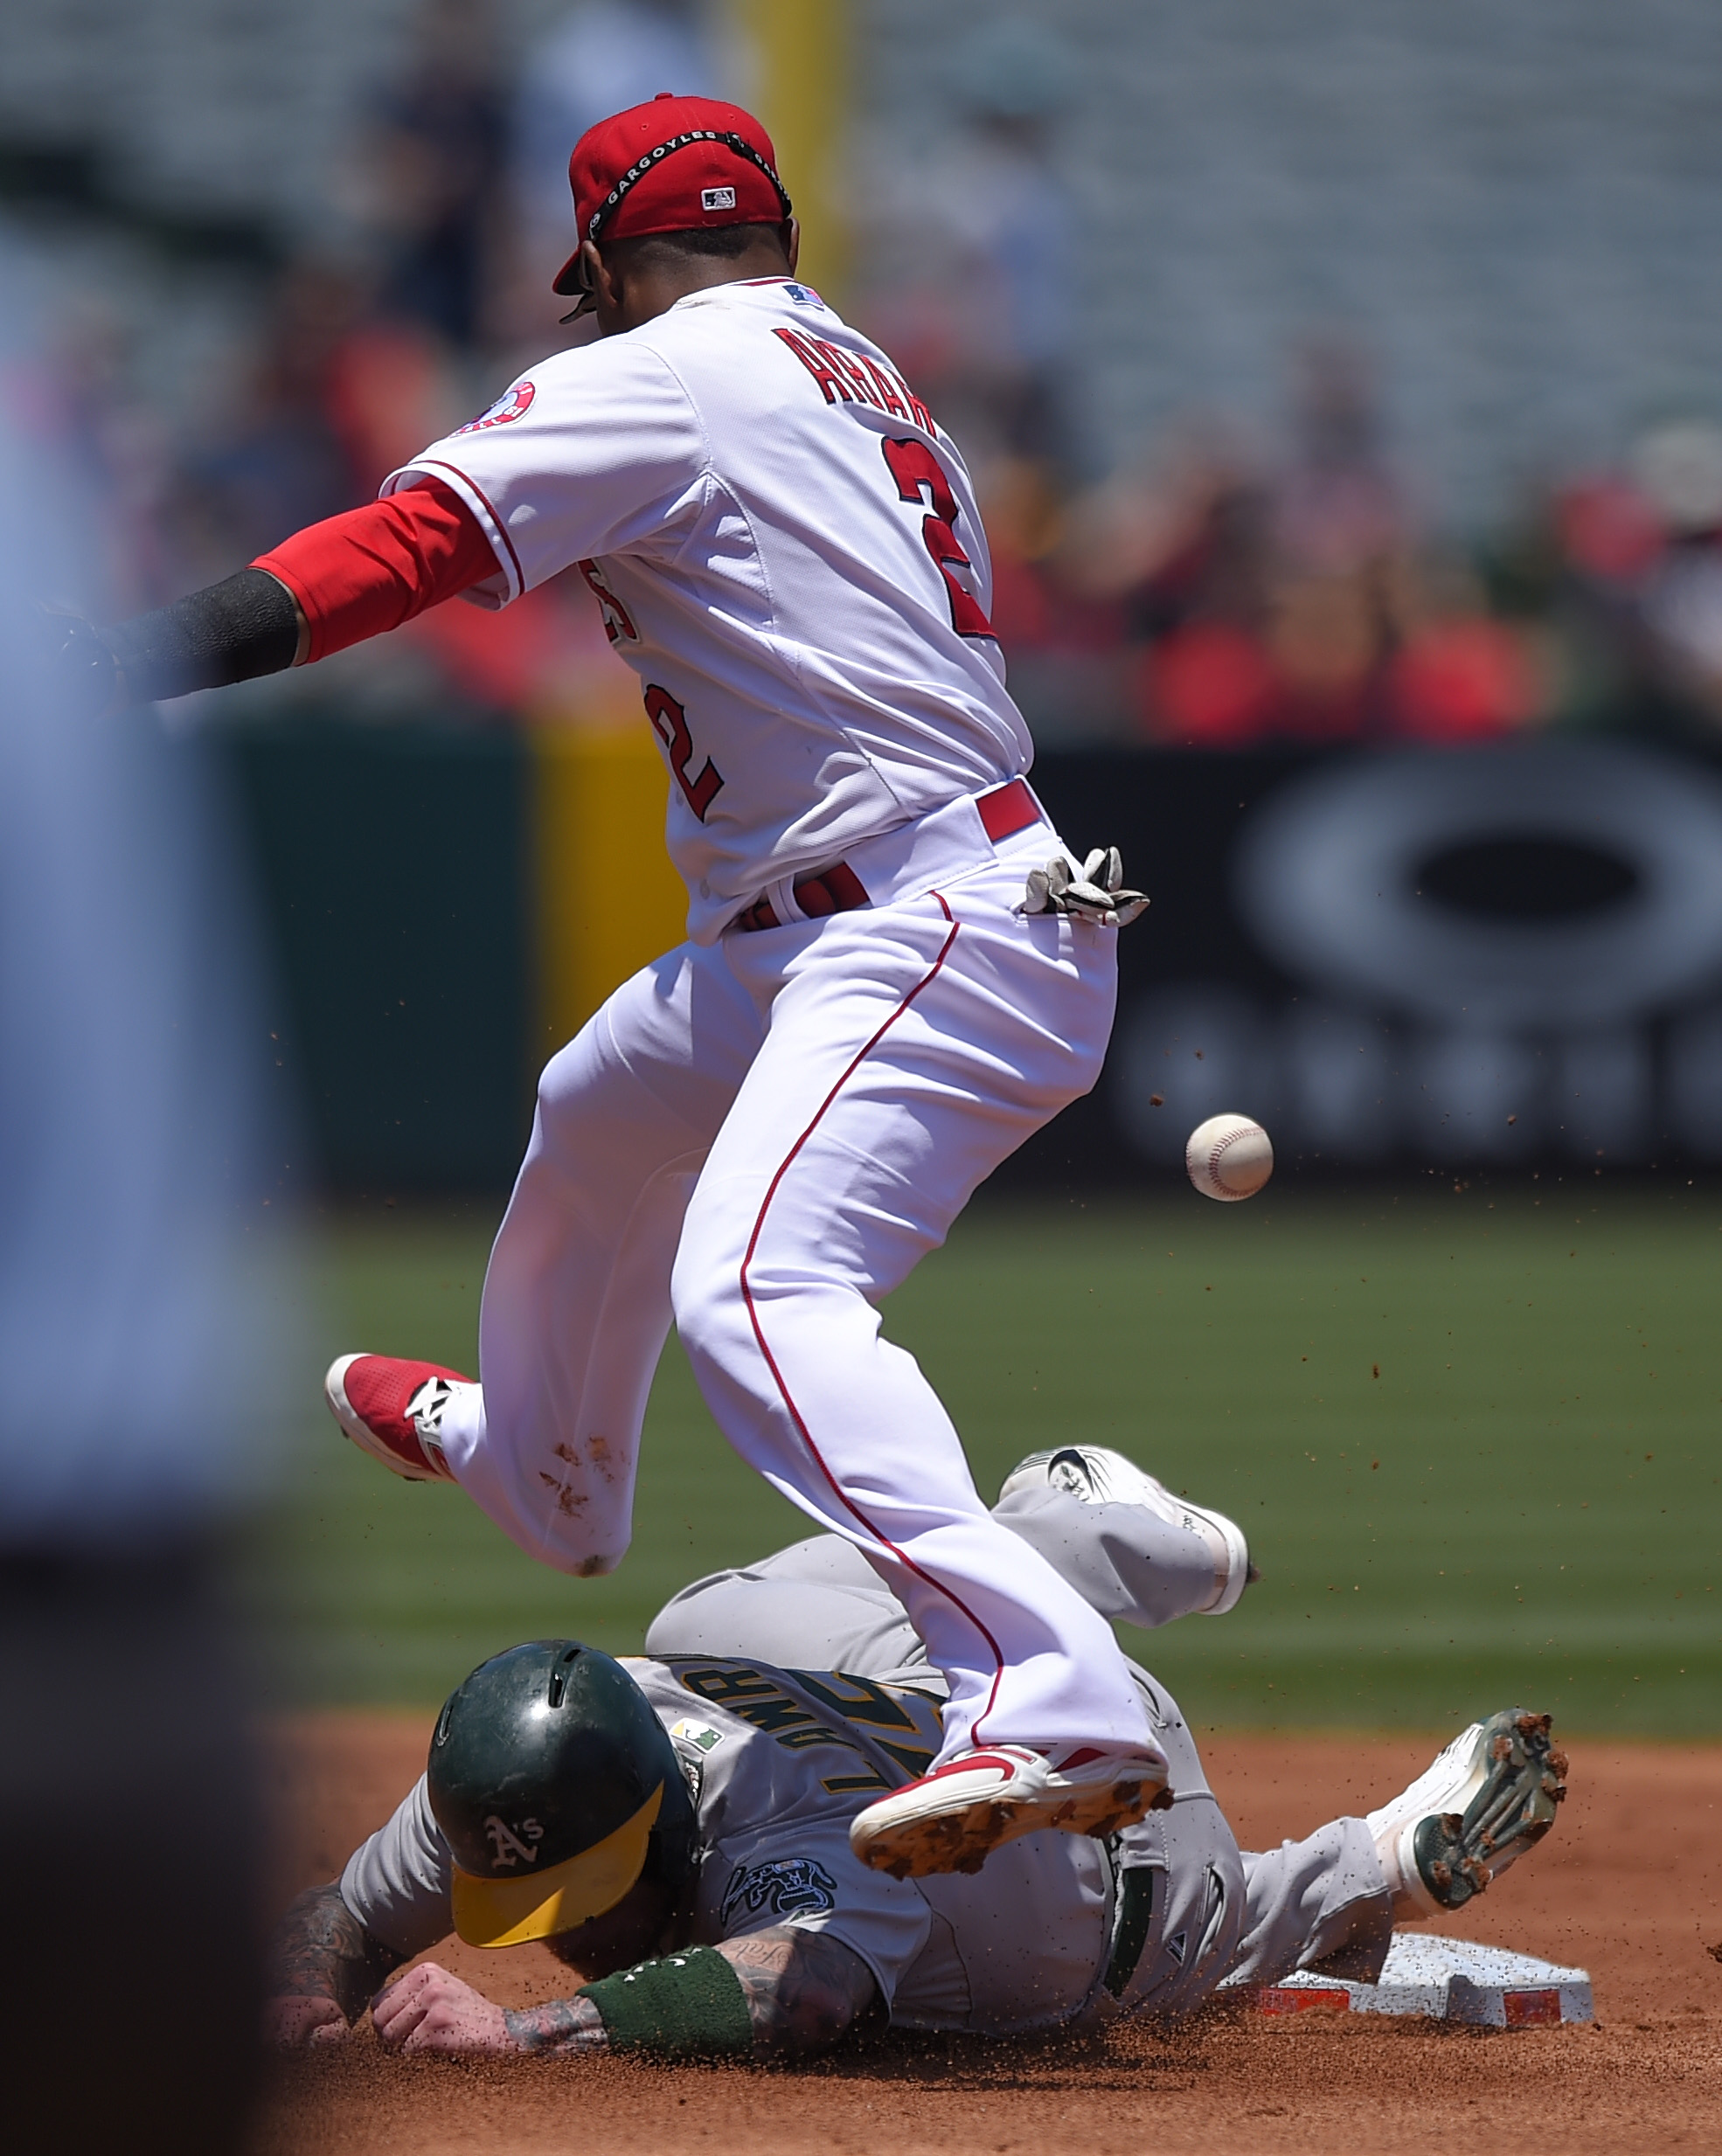 Oakland Athletics' Brett Lawrie, below, is forced out at second as Los Angeles Angels shortstop Erick Aybar looses the ball and is unable to throw out Max Muncy at first during the second inning of a baseball game, Sunday, June 14, 2015, in Anaheim, Calif